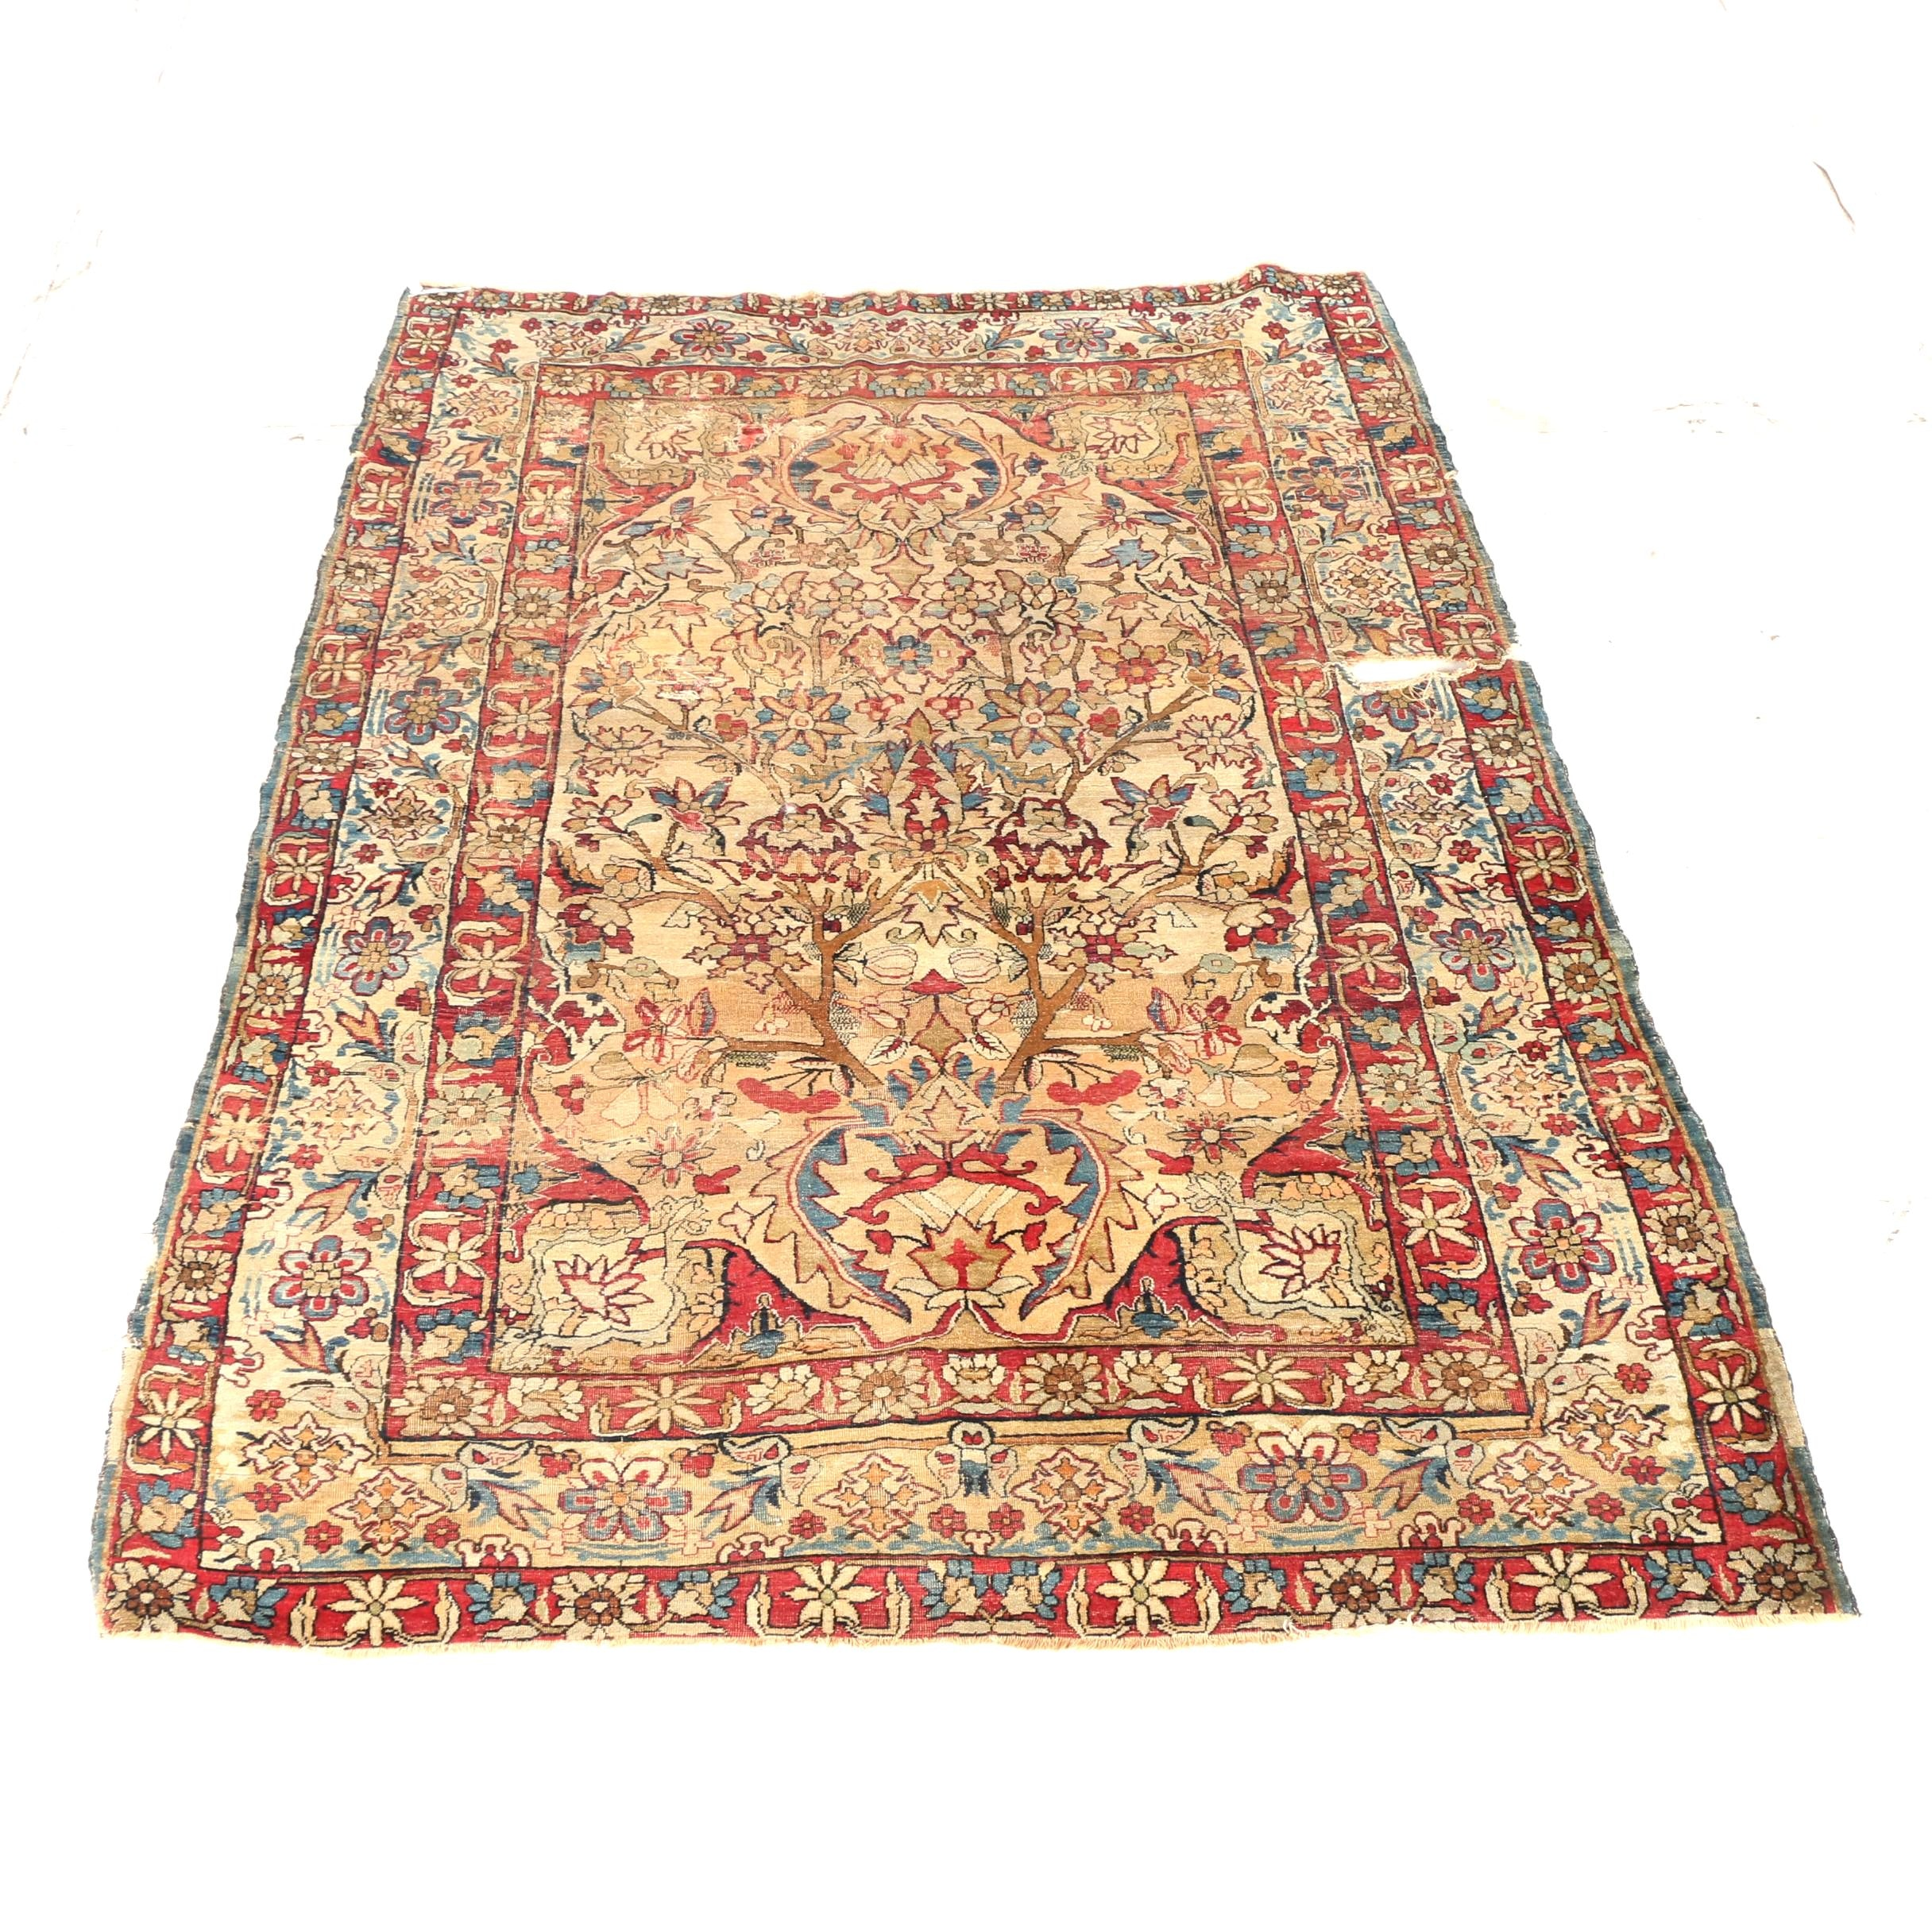 Antique Hand-Knotted Persian Bakhtiari Area Rug